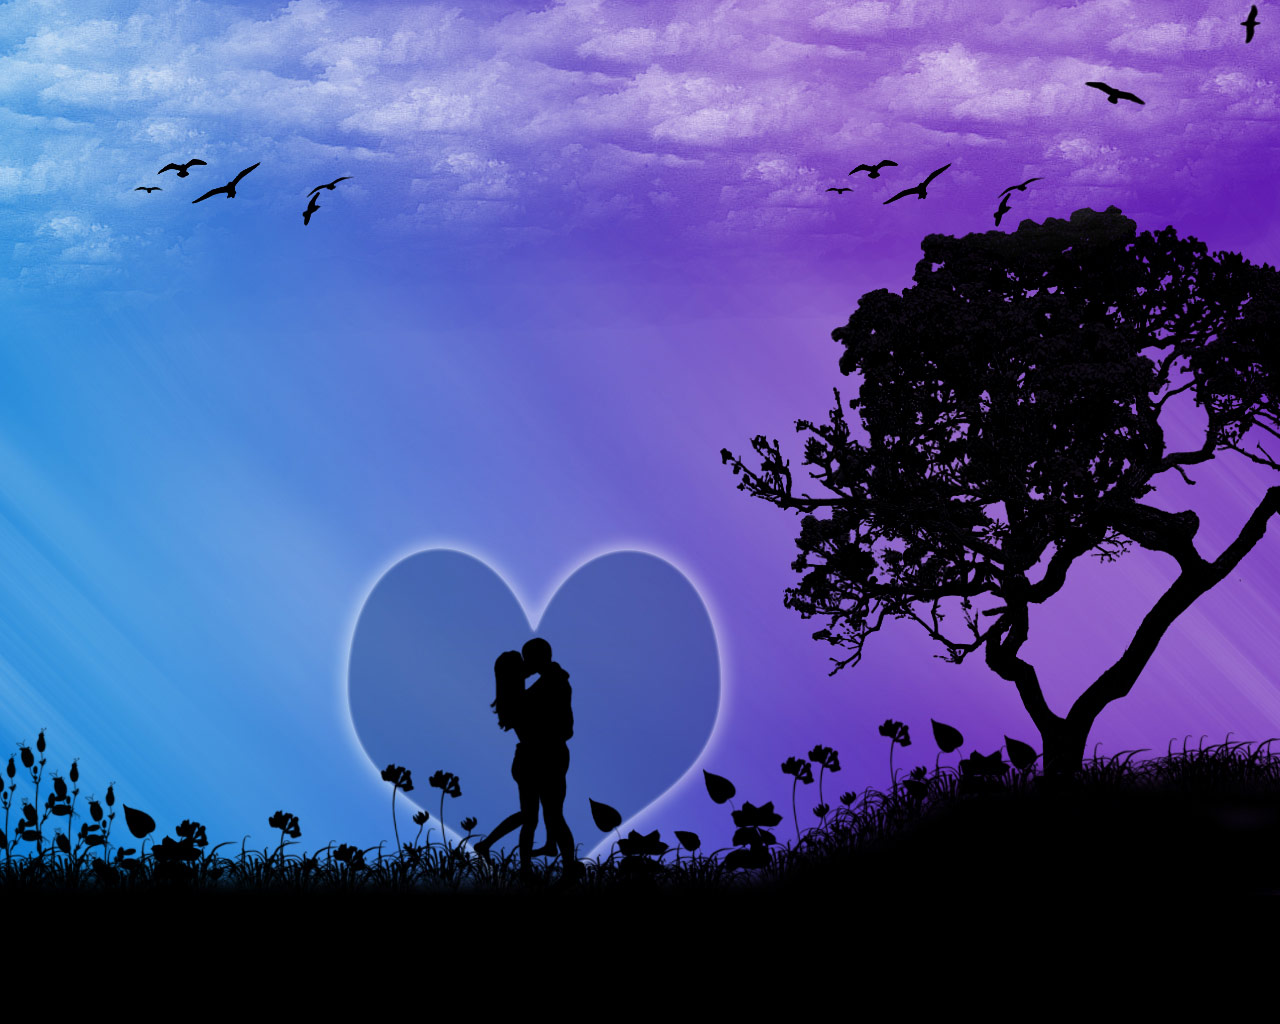 True Love Wallpaper Images : Free Wallpaper Dekstop: Real love wallpaper, love wallpapers free